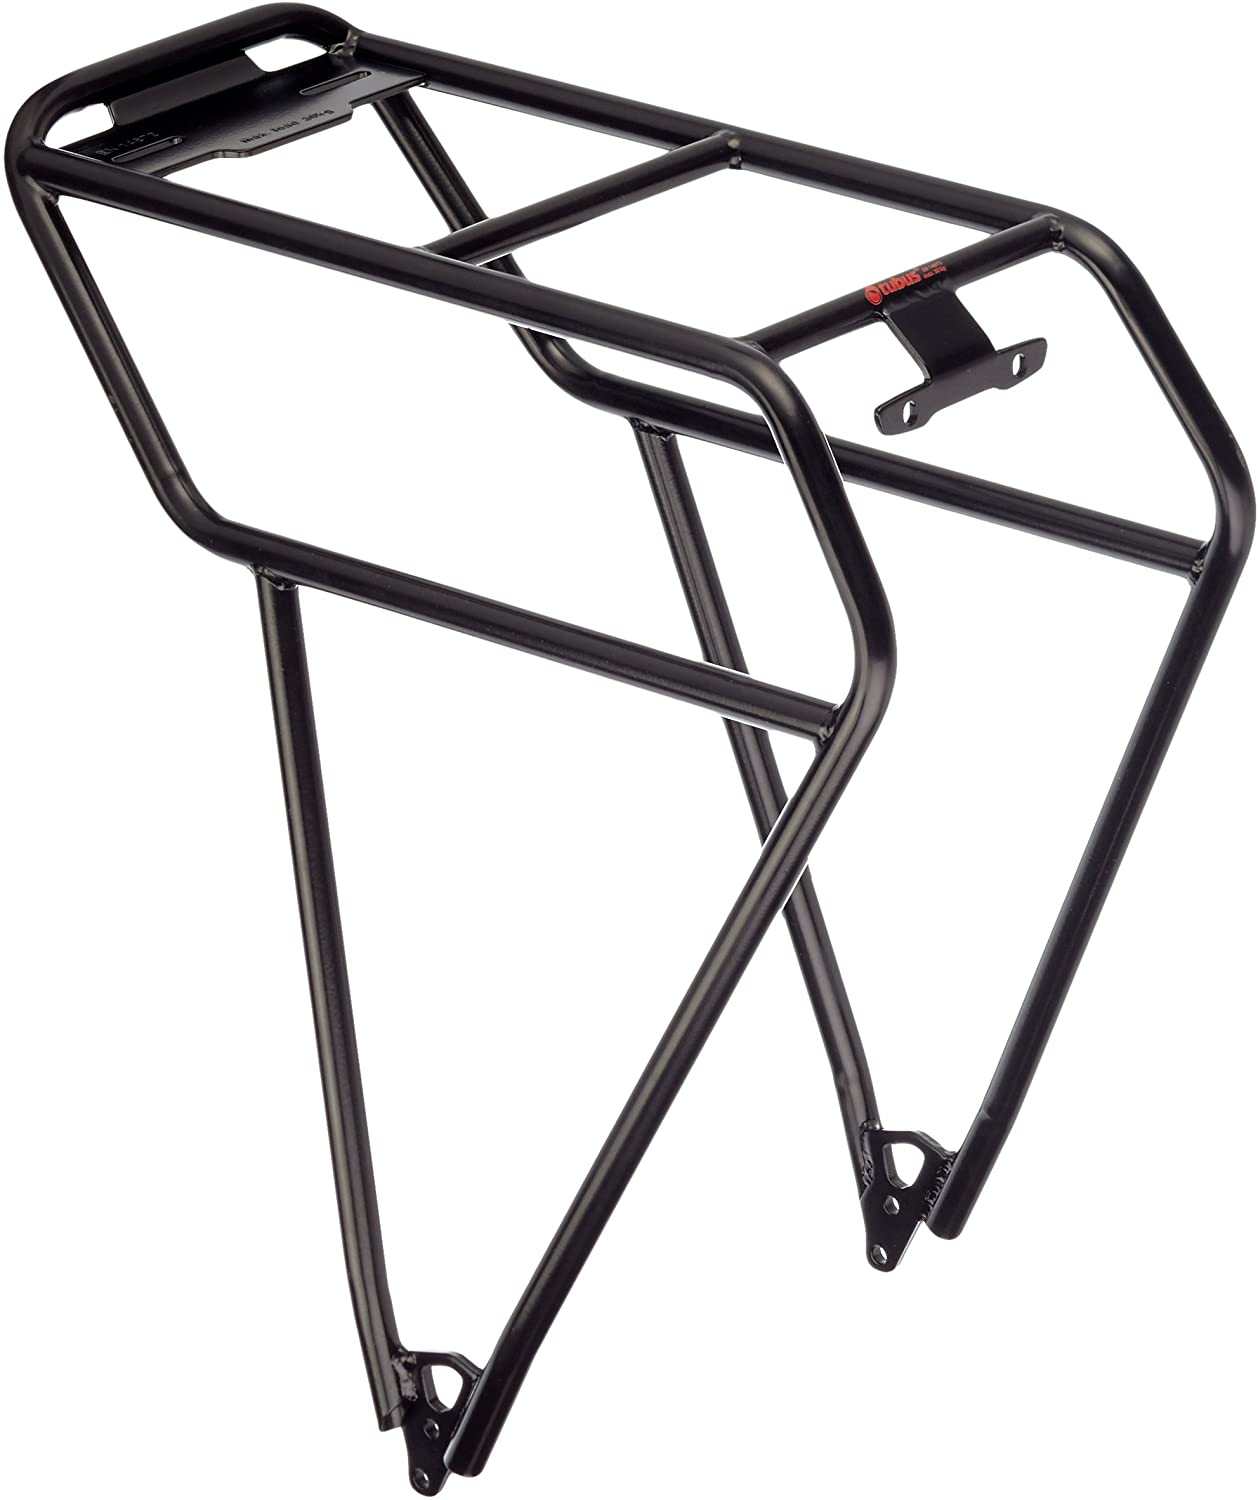 Tubus Fat Rear Bicycle Rack